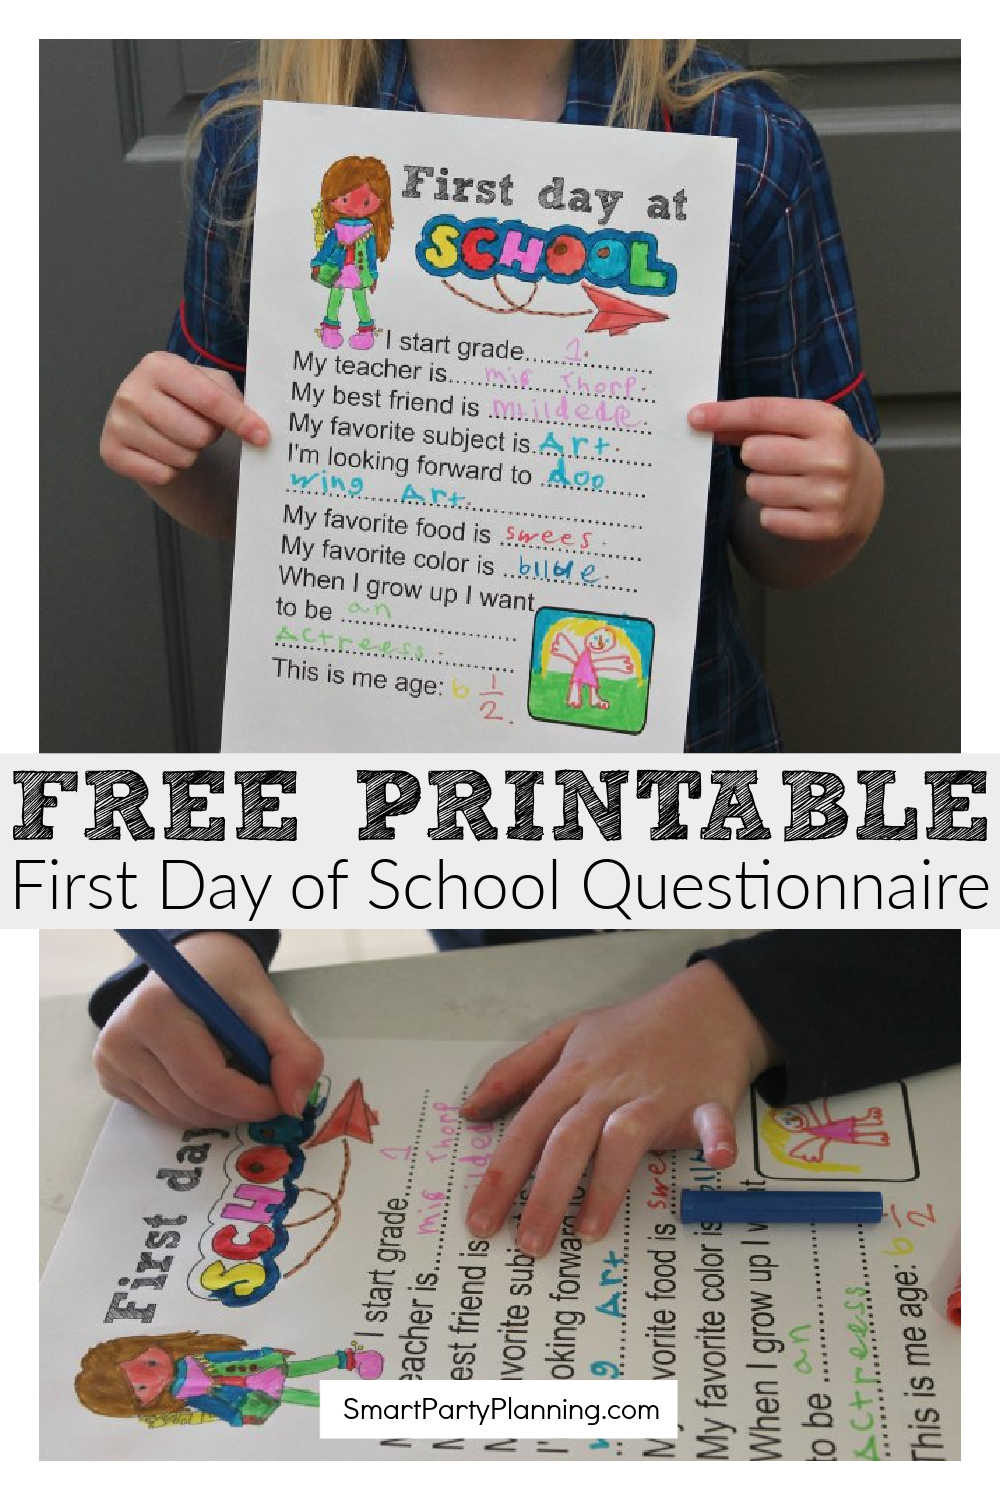 Free printable first day of school questionnaire